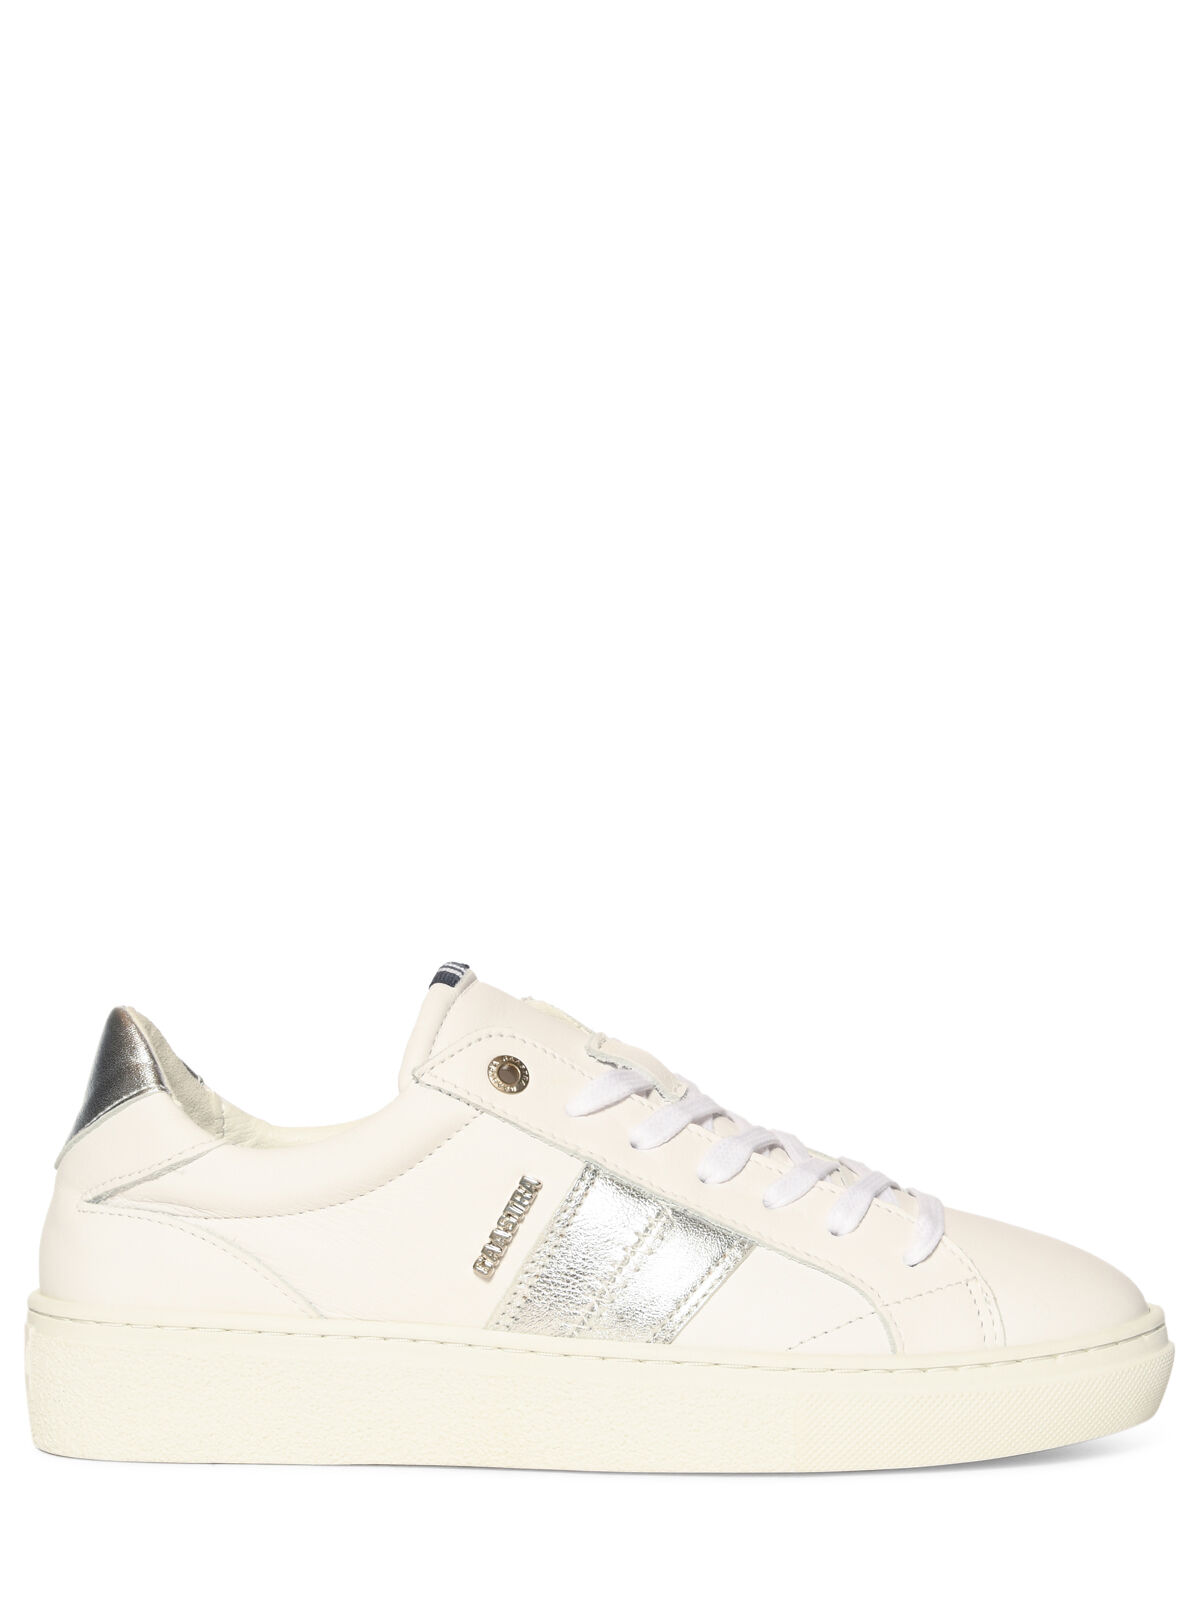 Gaastra Sneakers for women | DRESS FOR LESS